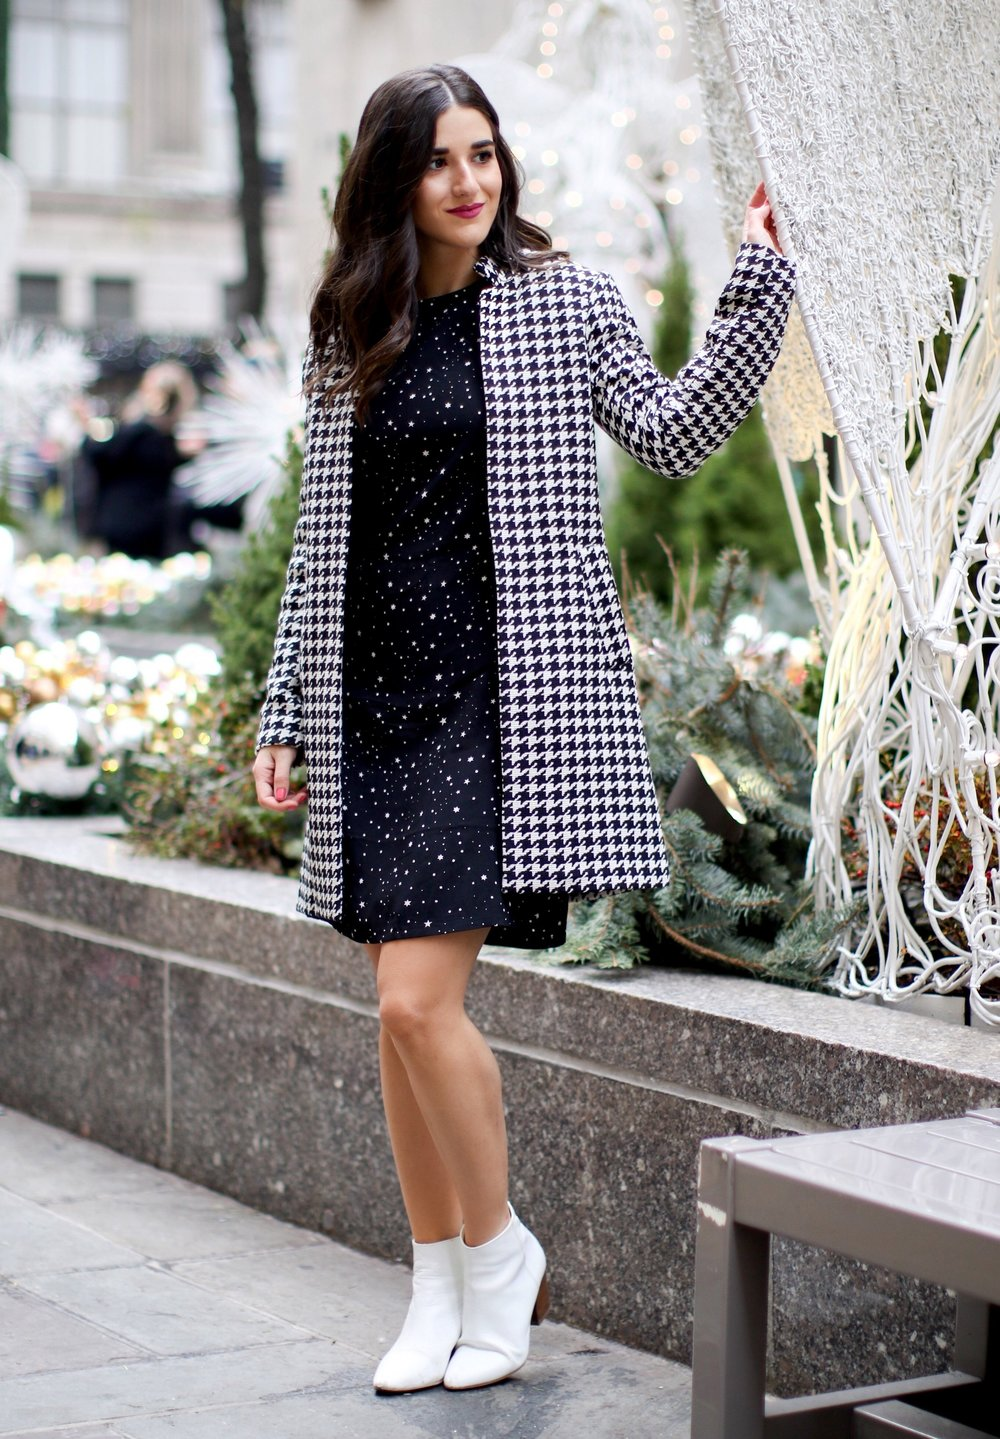 Houndstooth Coat White Booties The Pros And Cons Of Freelancing Esther Santer Fashion Blog NYC Street Style Blogger Outfit OOTD Trendy Holiday Season New York City Photoshoot Pretty Hair Black Star Dress Cute Shoes Shop Wear H&M Zara Girl Winter Women.jpg